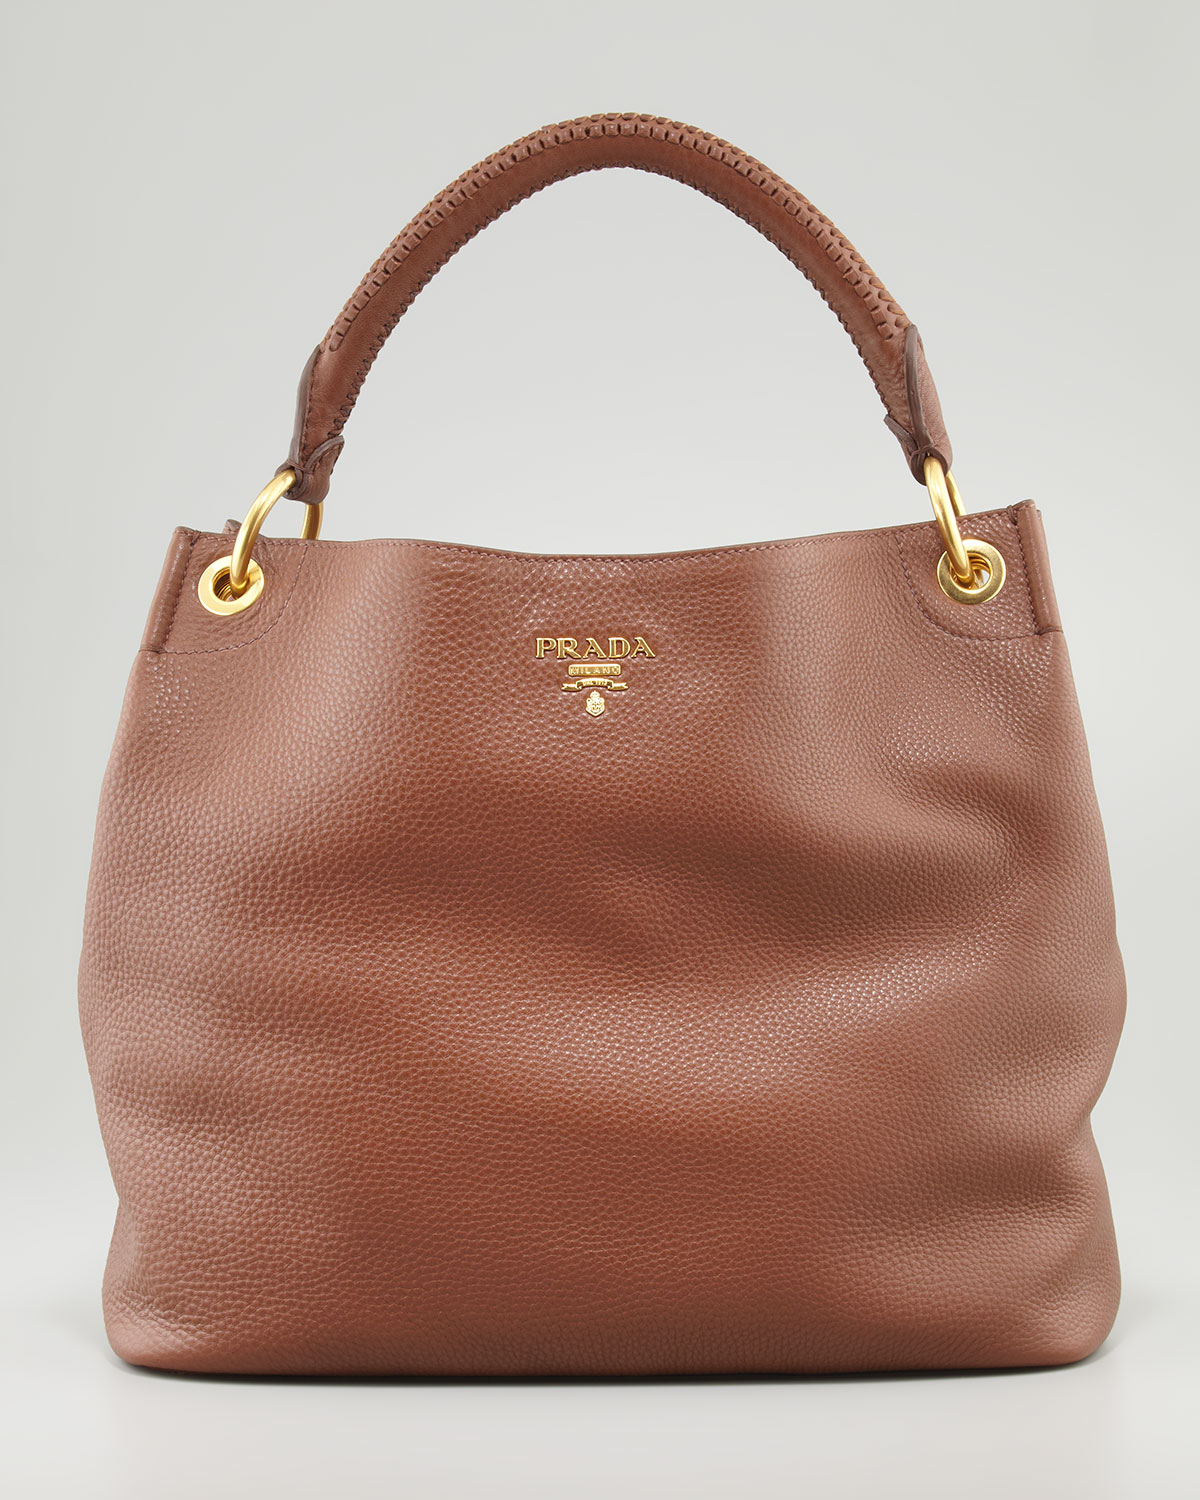 b3fa654d6f3661 ... low price prada daino woven handle hobo bag in brown lyst a56b0 af755  where can i buy prada vitello ...